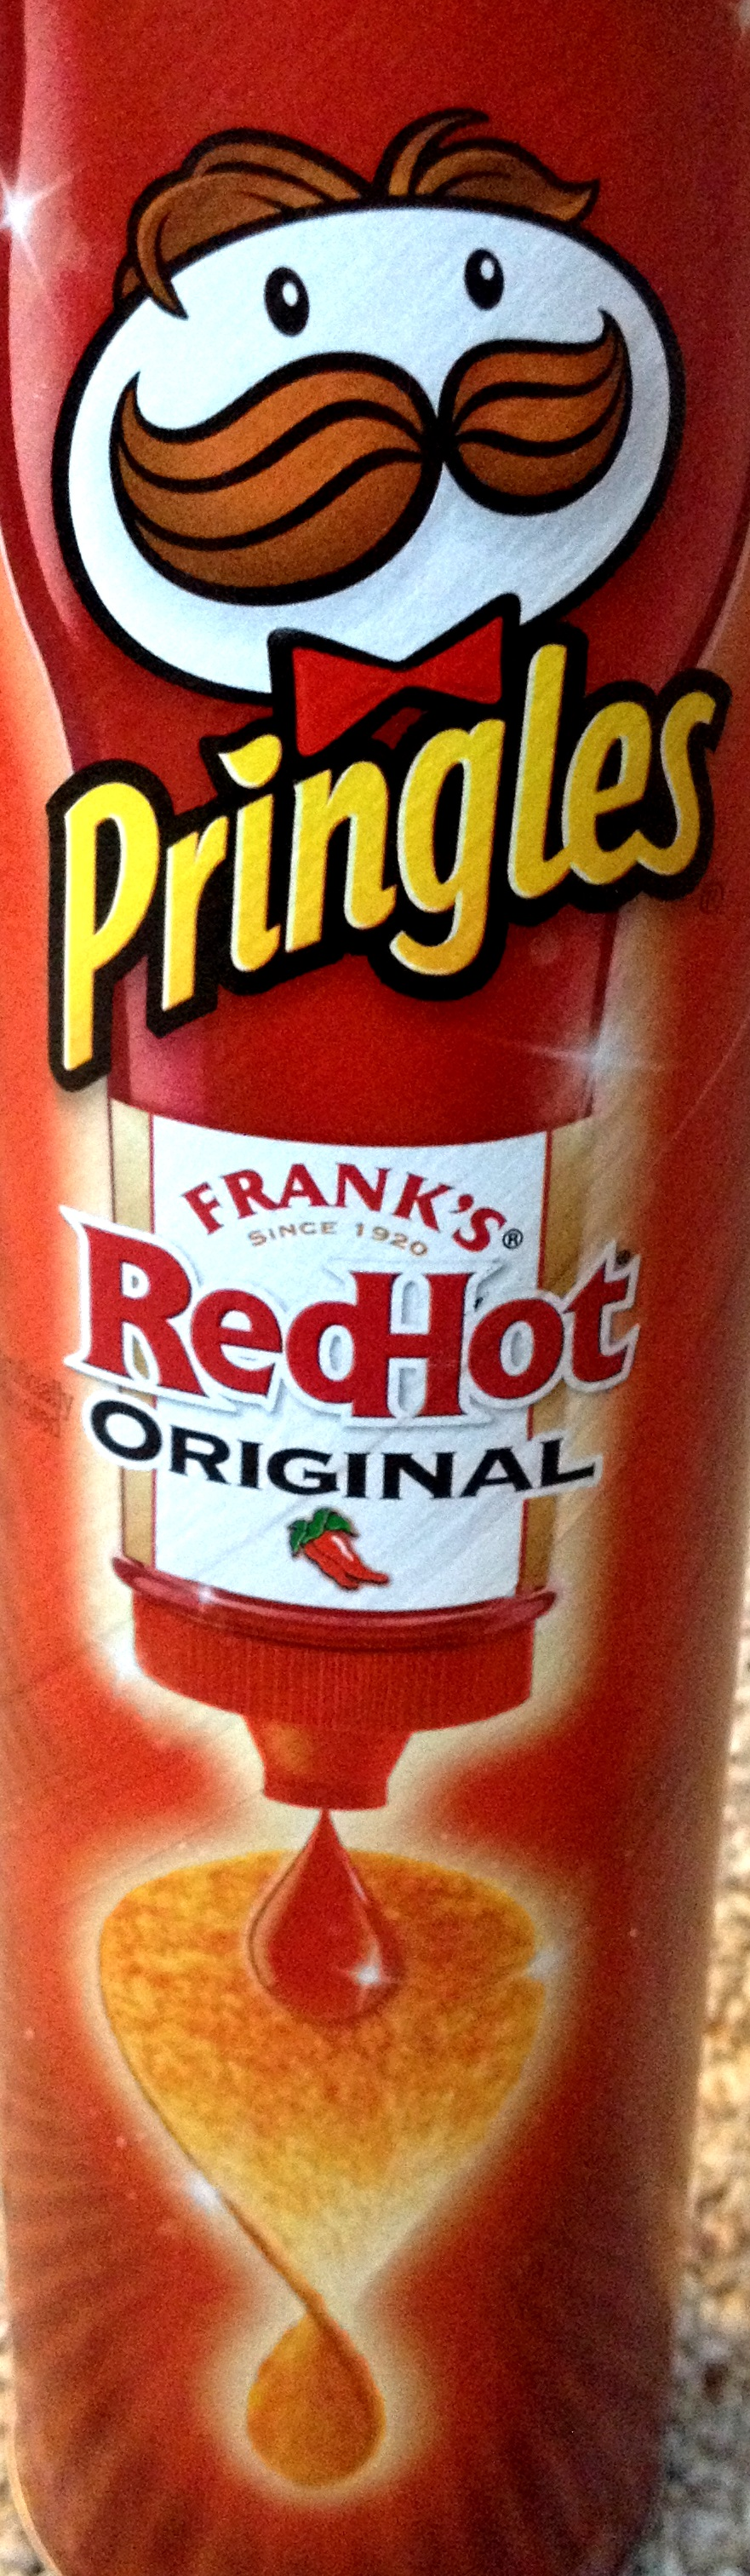 franks red hot chip review